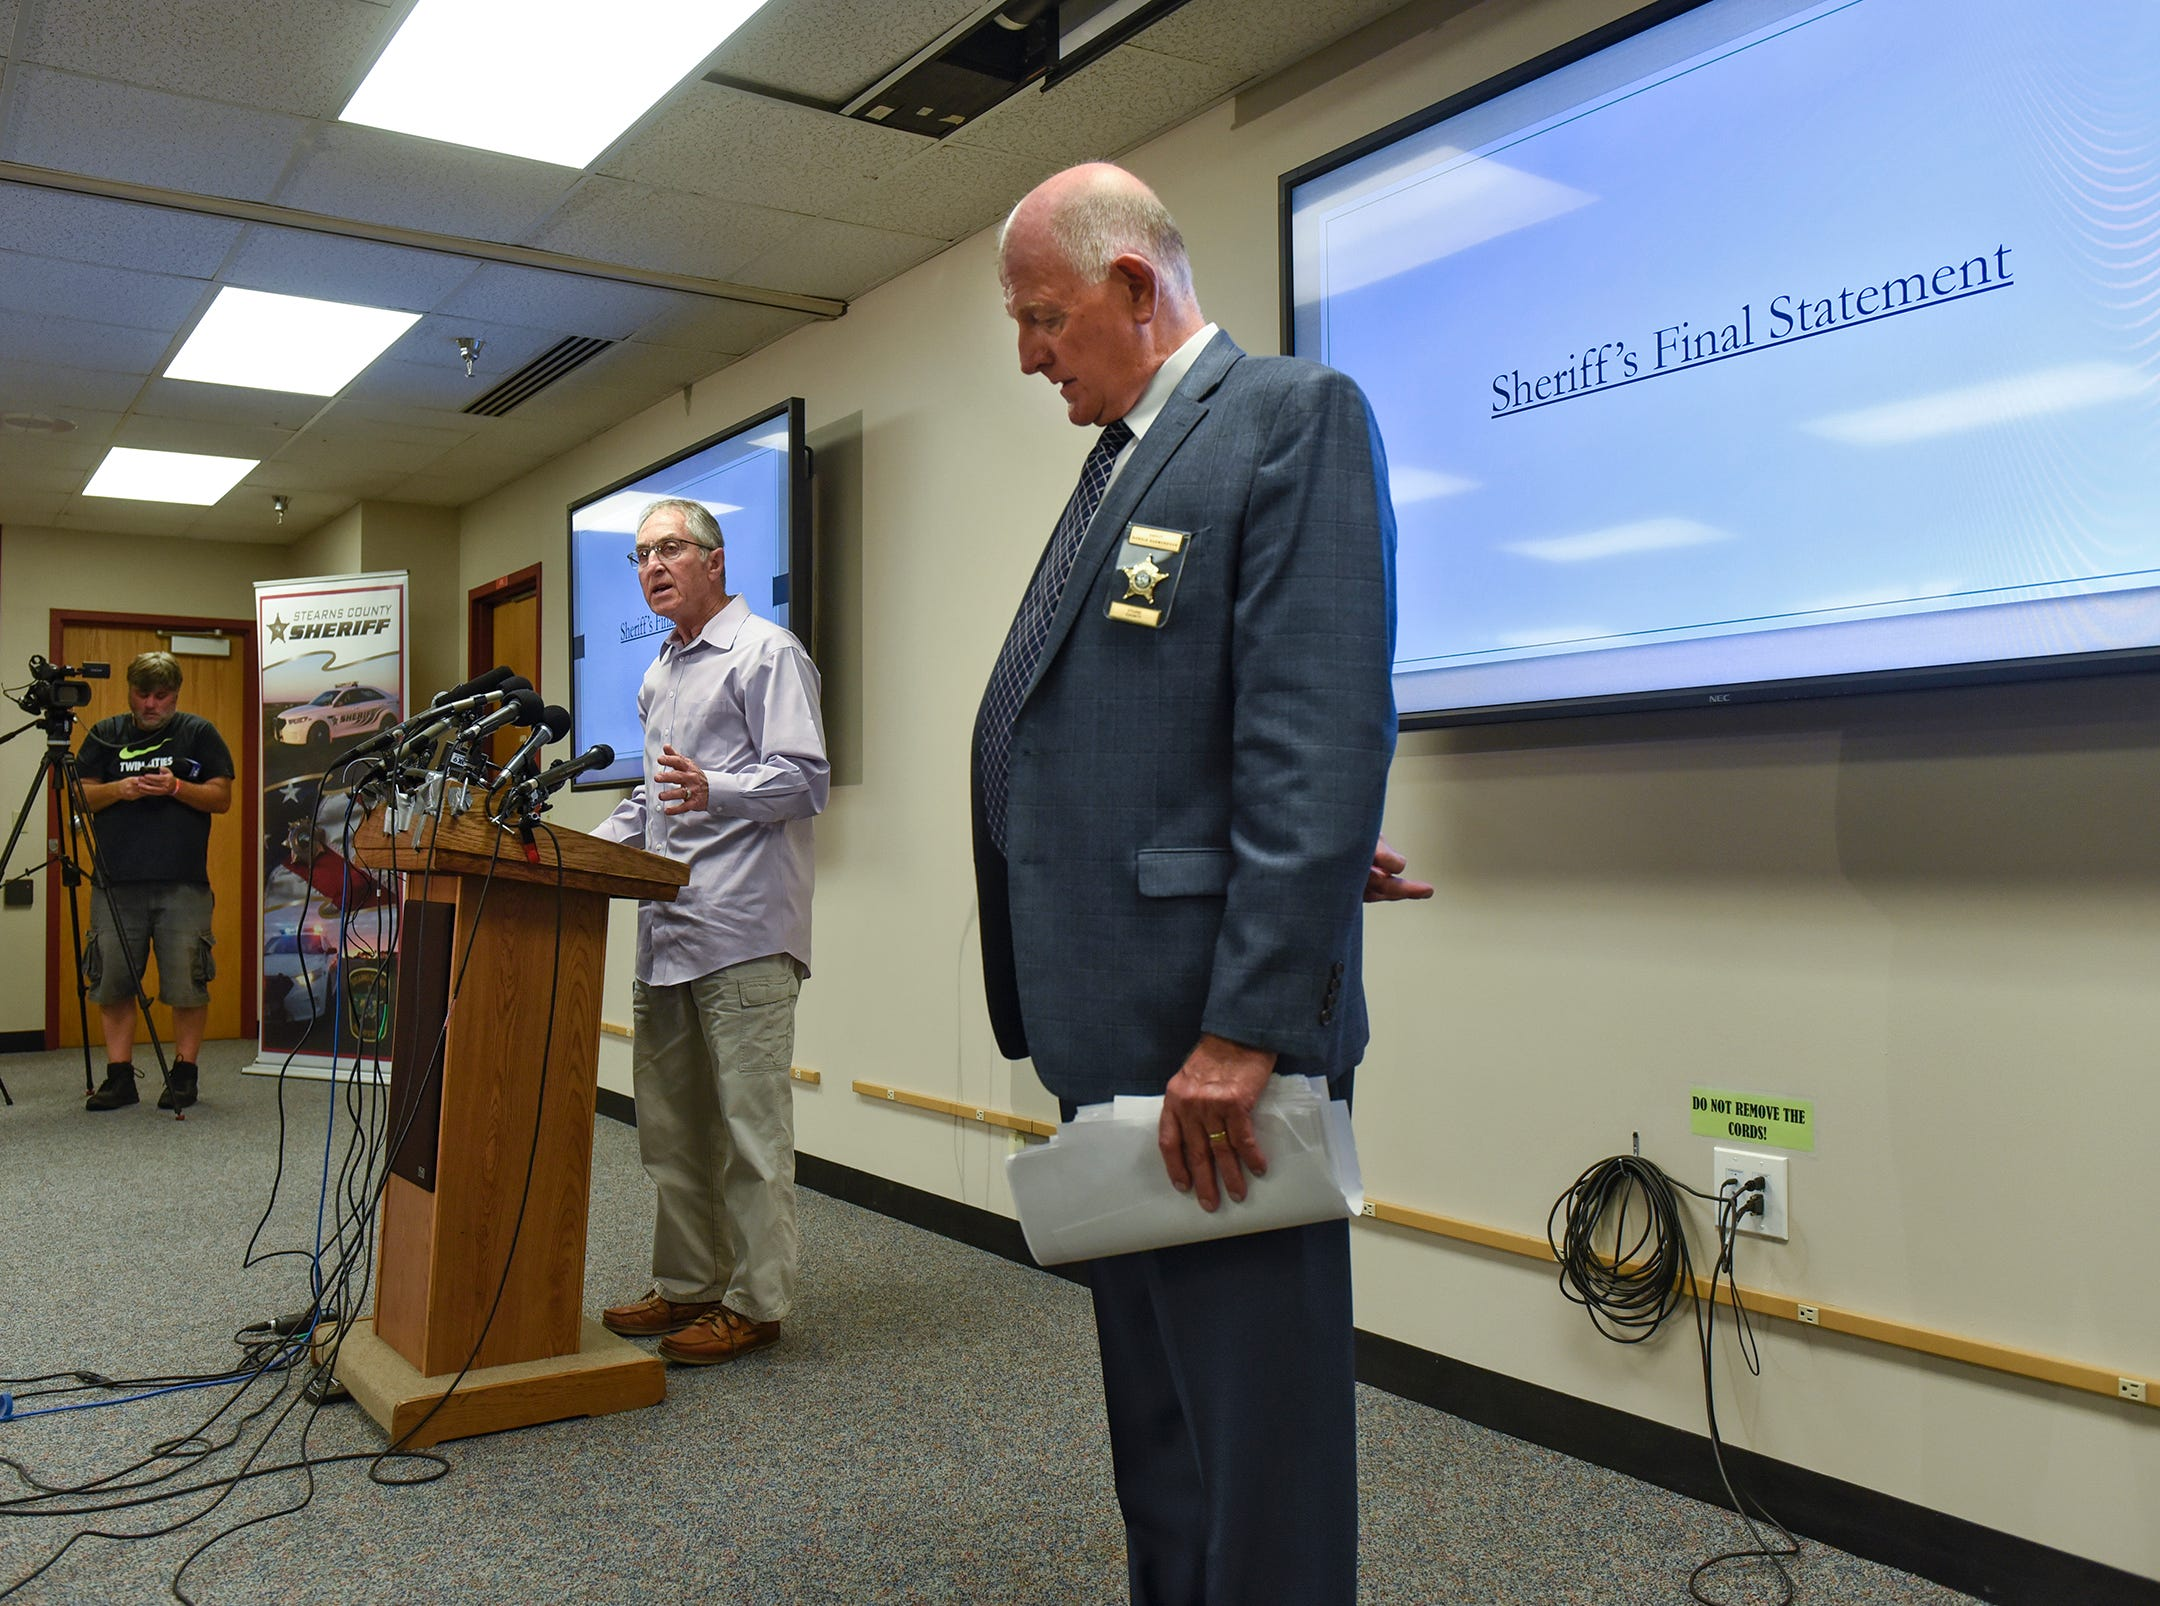 Stearns County Sheriff Don Gudmundson pauses as former FBI investigator Al Garber takes the podium following a press conference on the release of investigative files in the Jacob Wetterling case Thursday, Sept. 20, 2018, in St. Cloud.